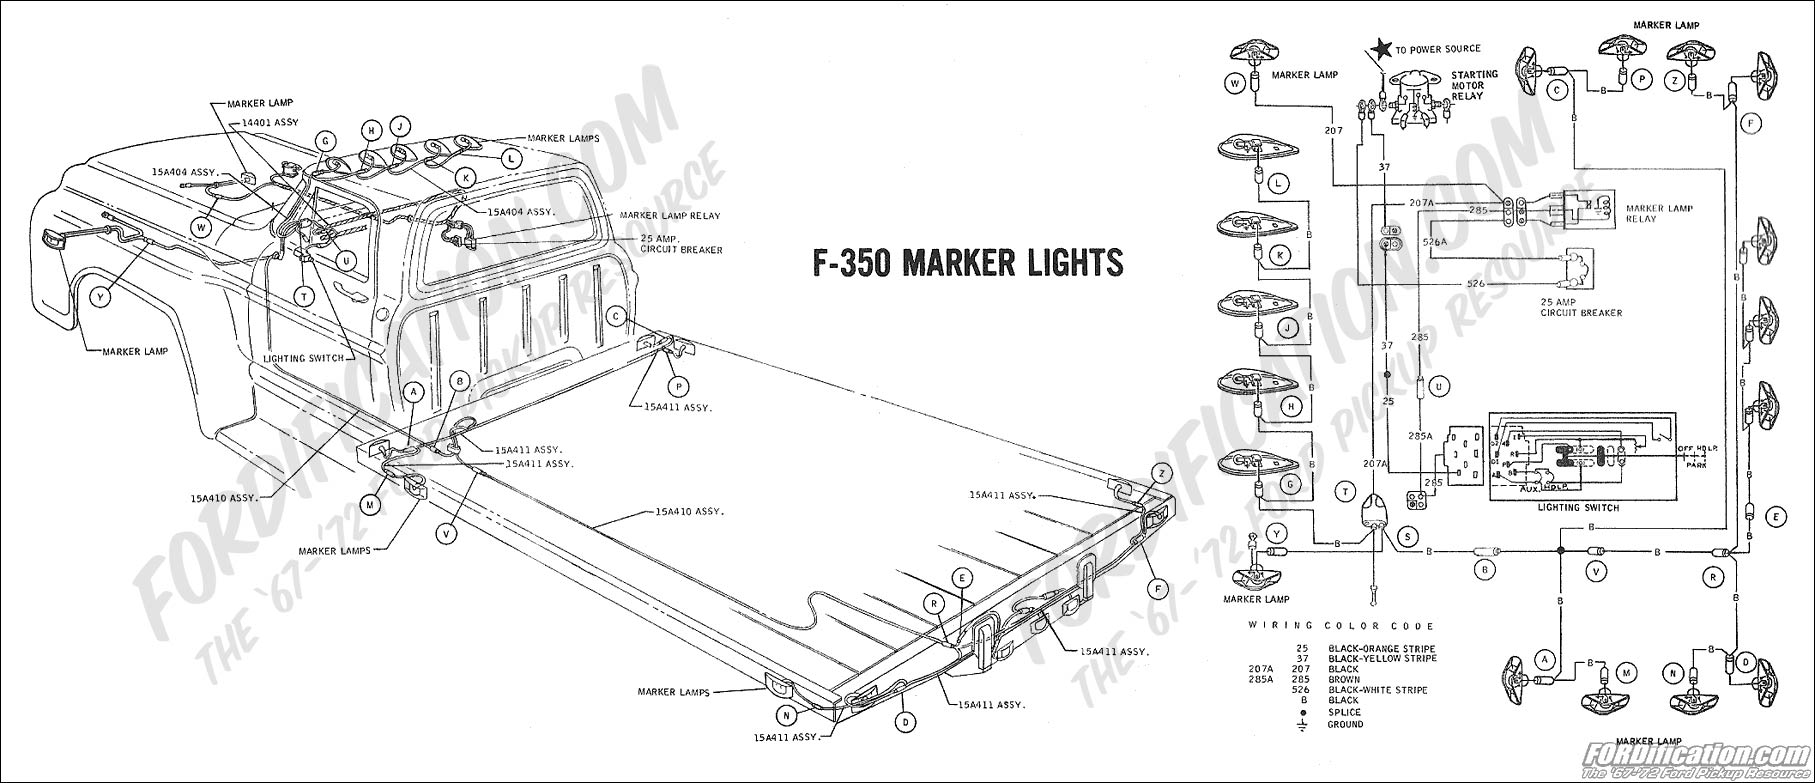 ford truck technical drawings and schematics section h wiring 2001 f250 radio wiring diagram 1969 f 350 marker lights